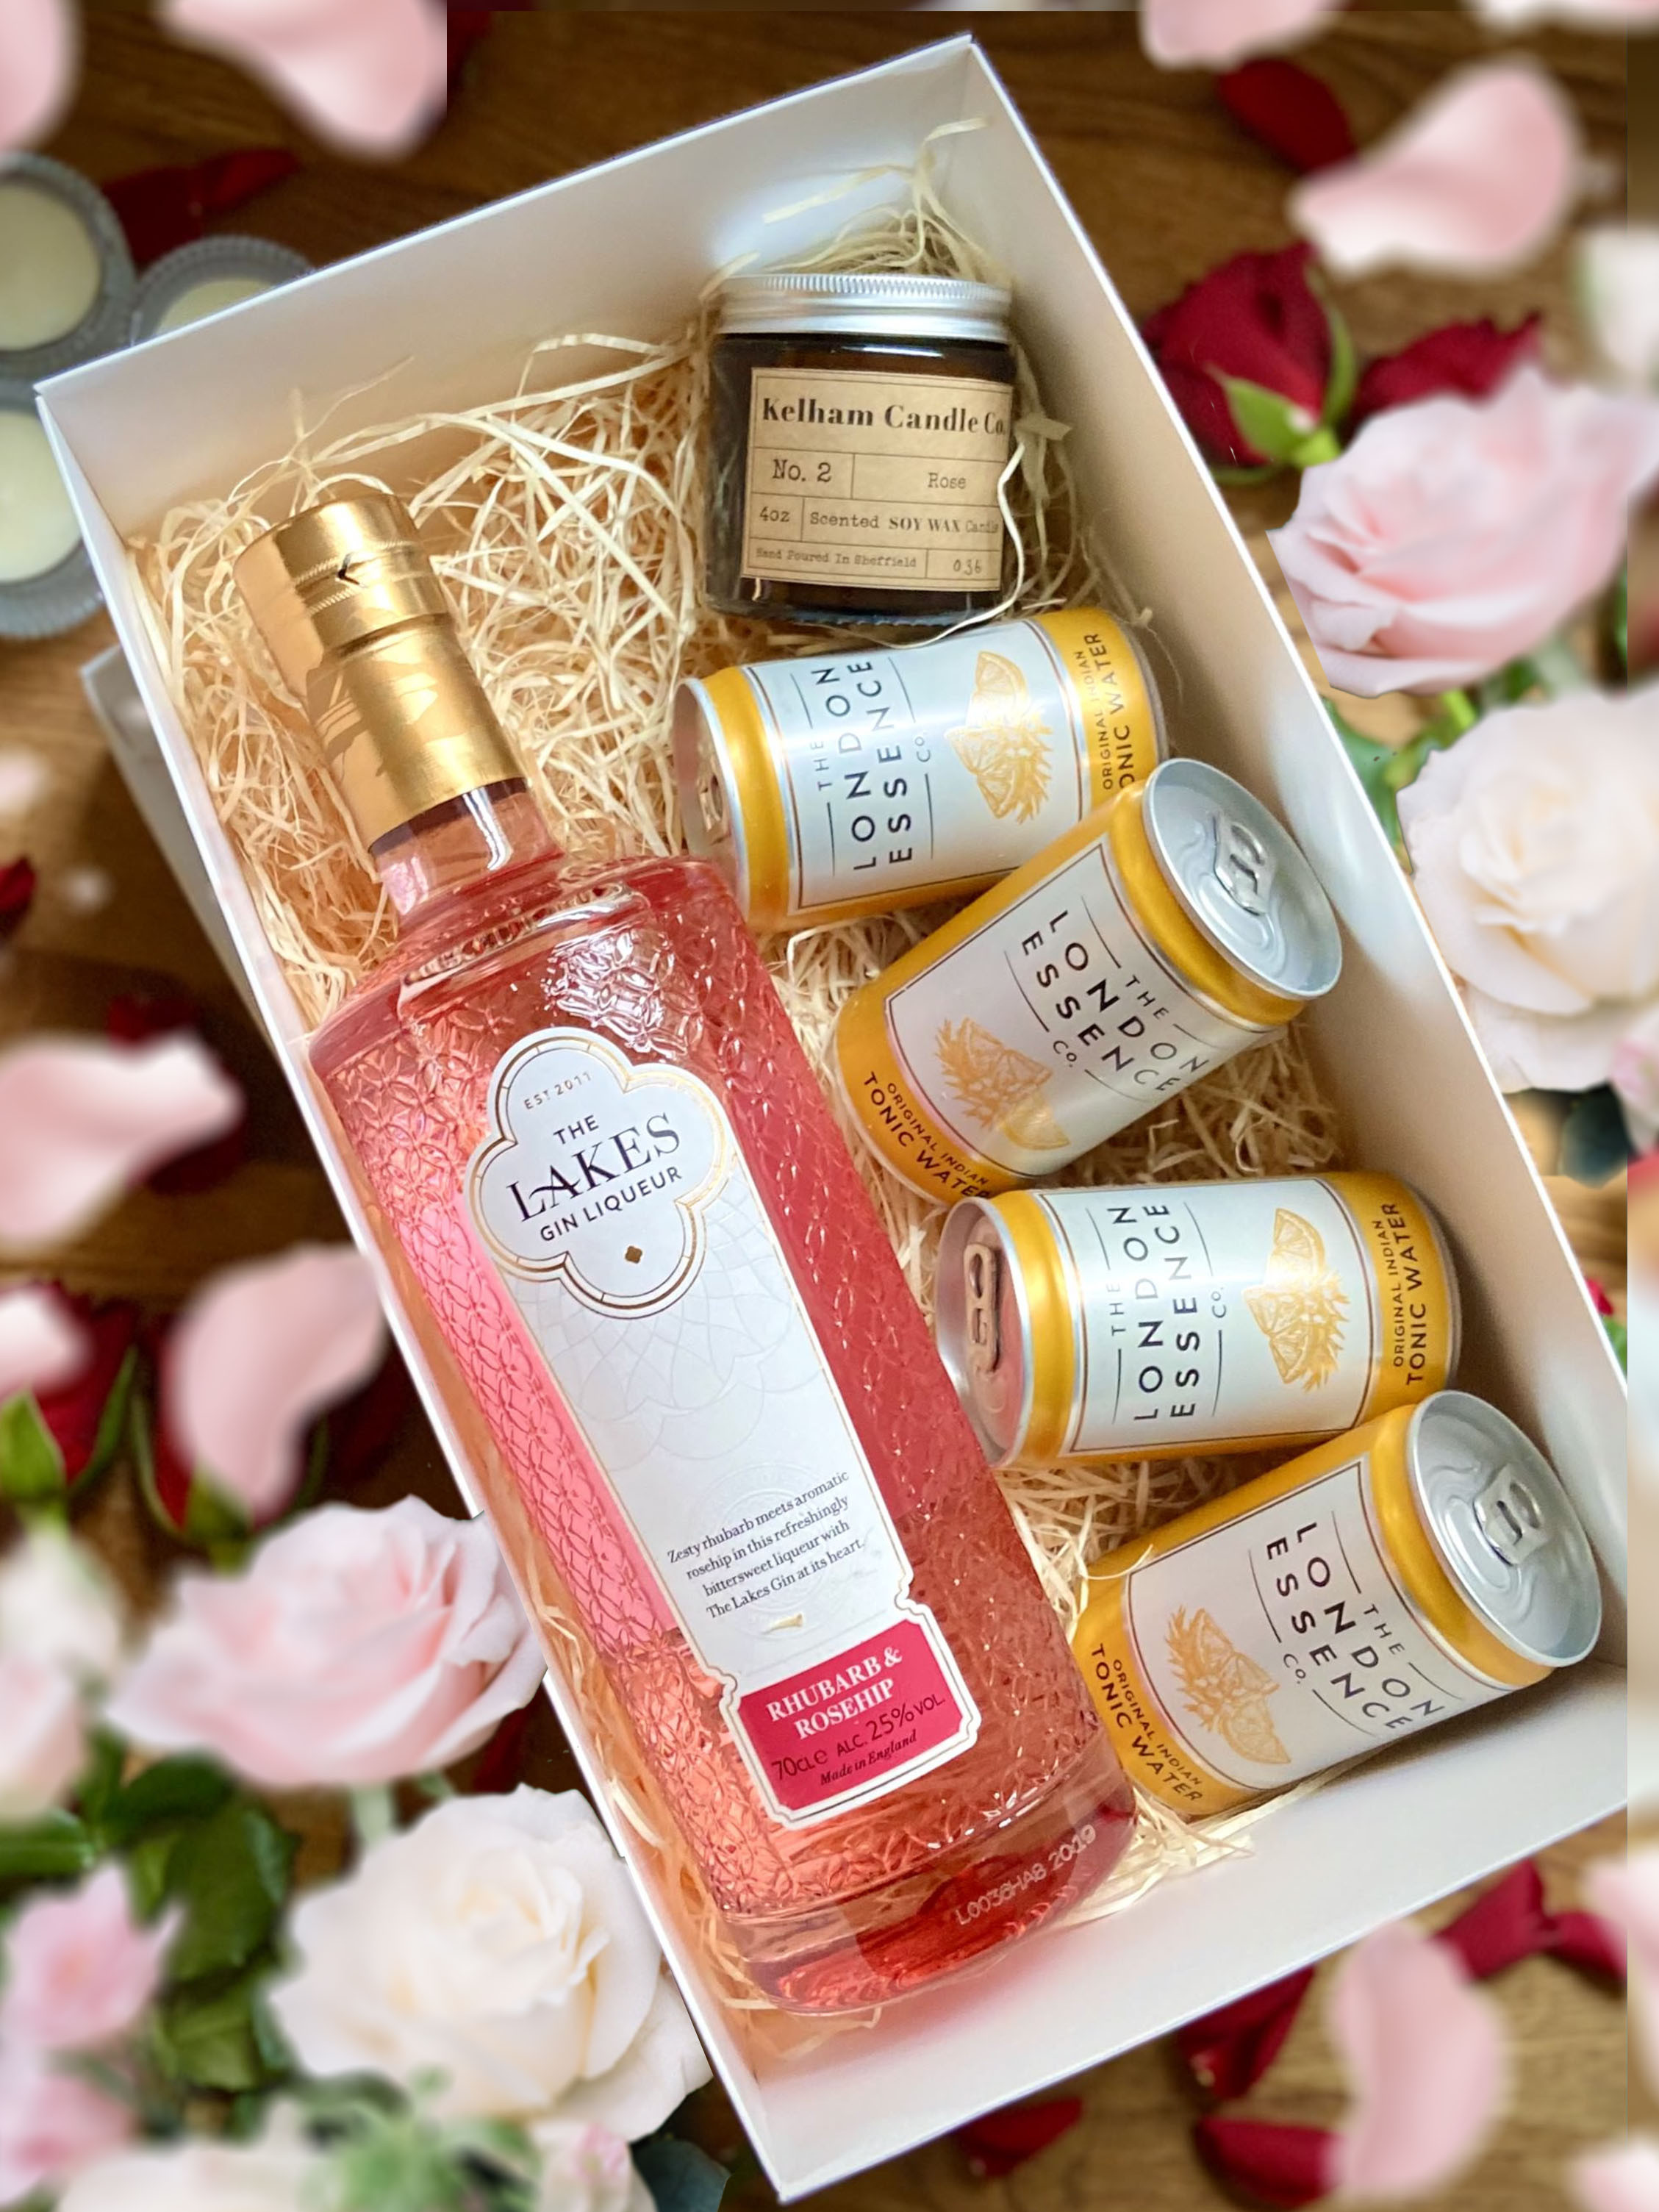 The Lakes Rhubarb and Rosehip Gin Liqueur 70cl, 4 x London Essence Tonic Cans 150ml and 4oz Kelham Candle Co set